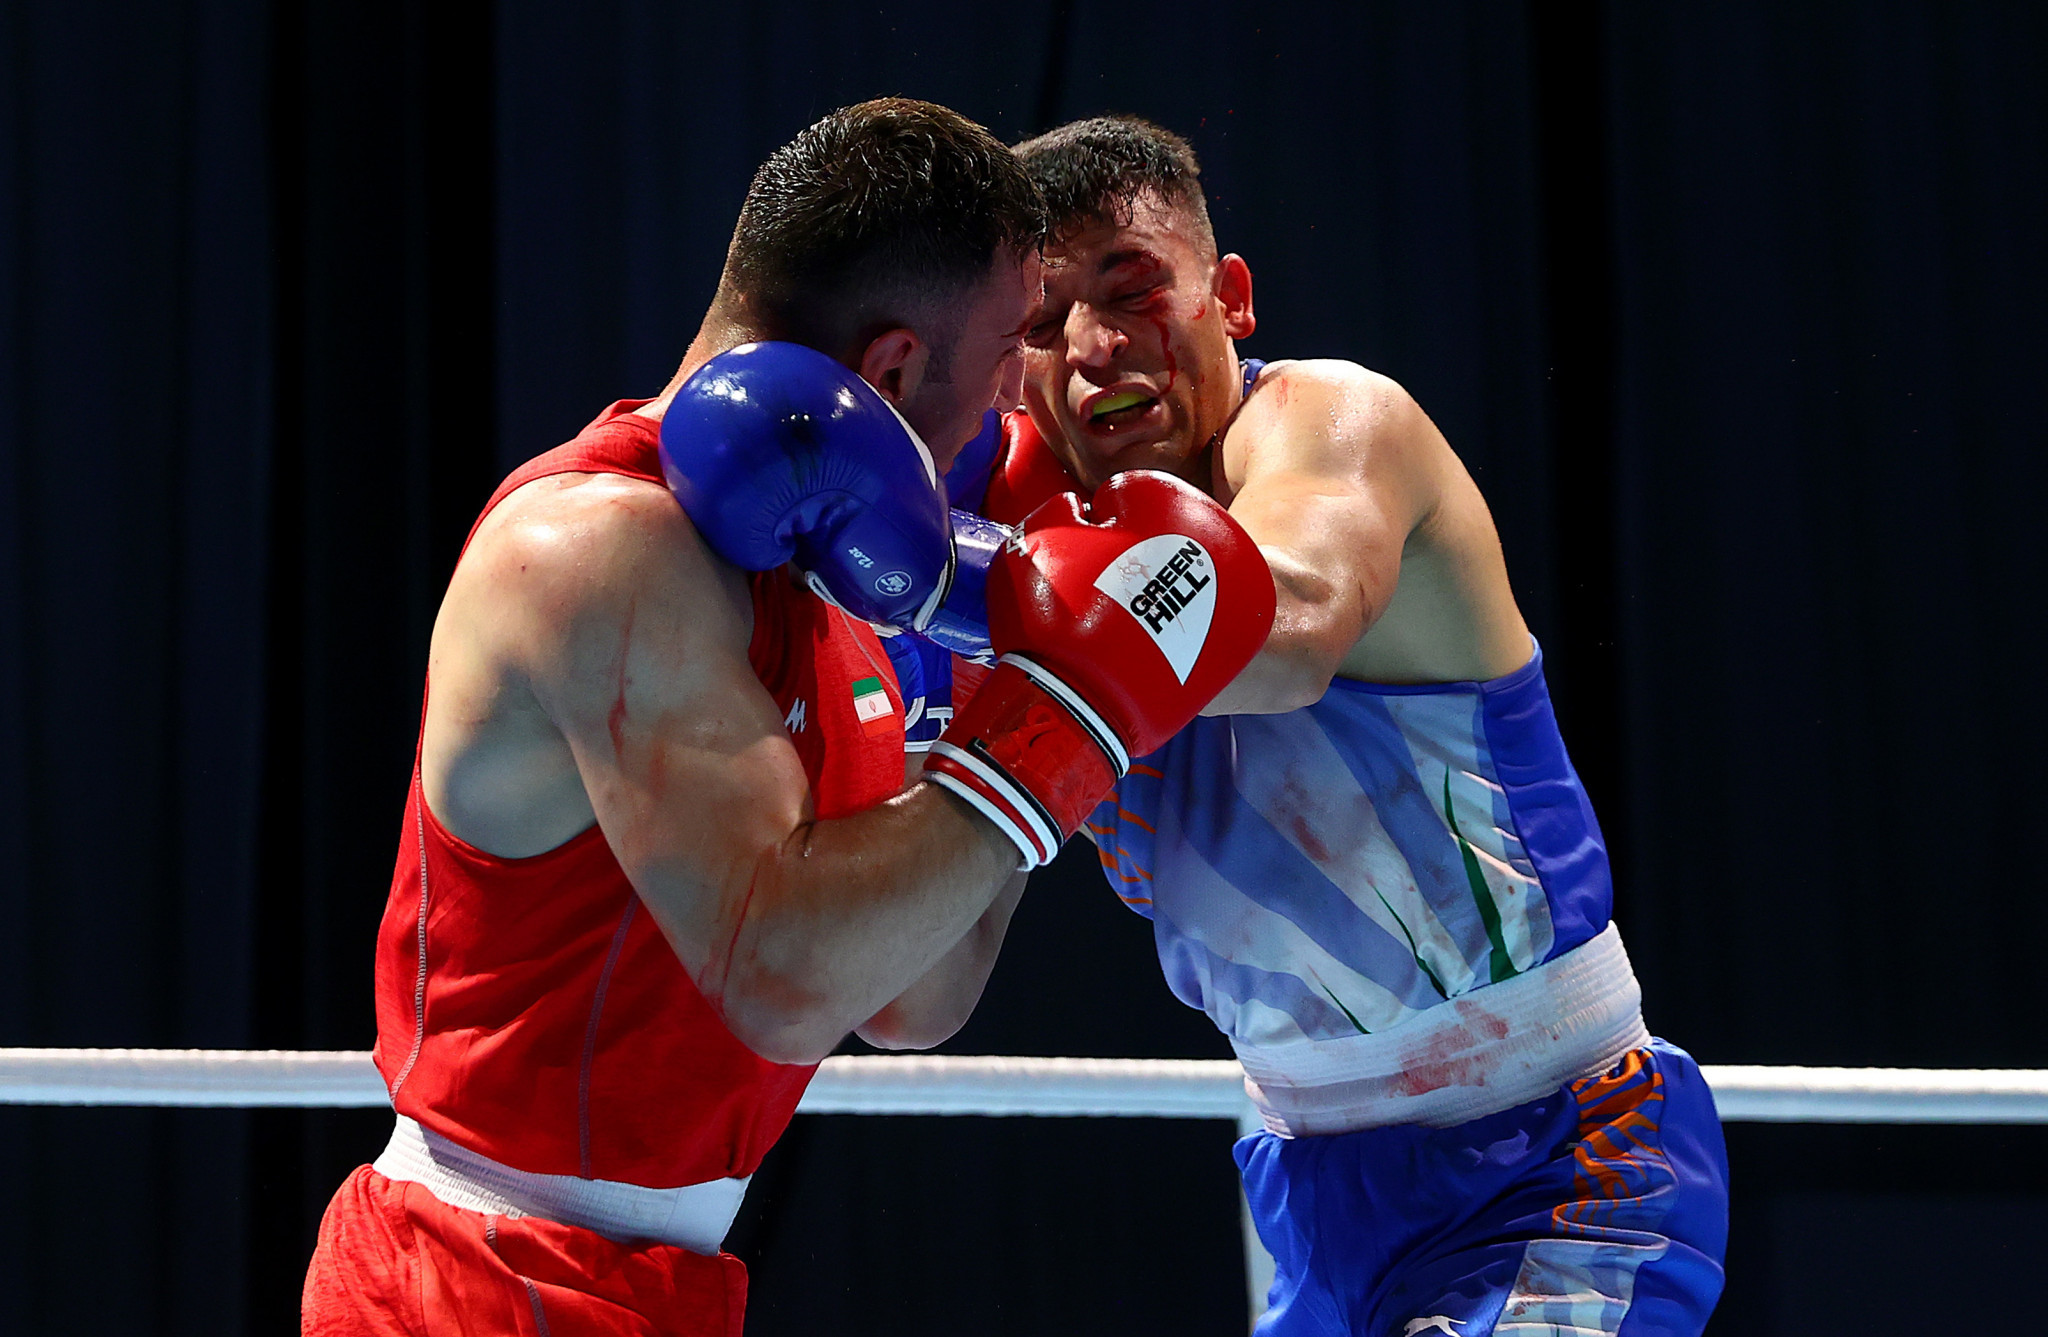 Meysam Gheshlaghi, in red, was one of four Iranian boxers to record wins on day one of the ASBC Elite Boxing Championships in Dubai ©Getty Images